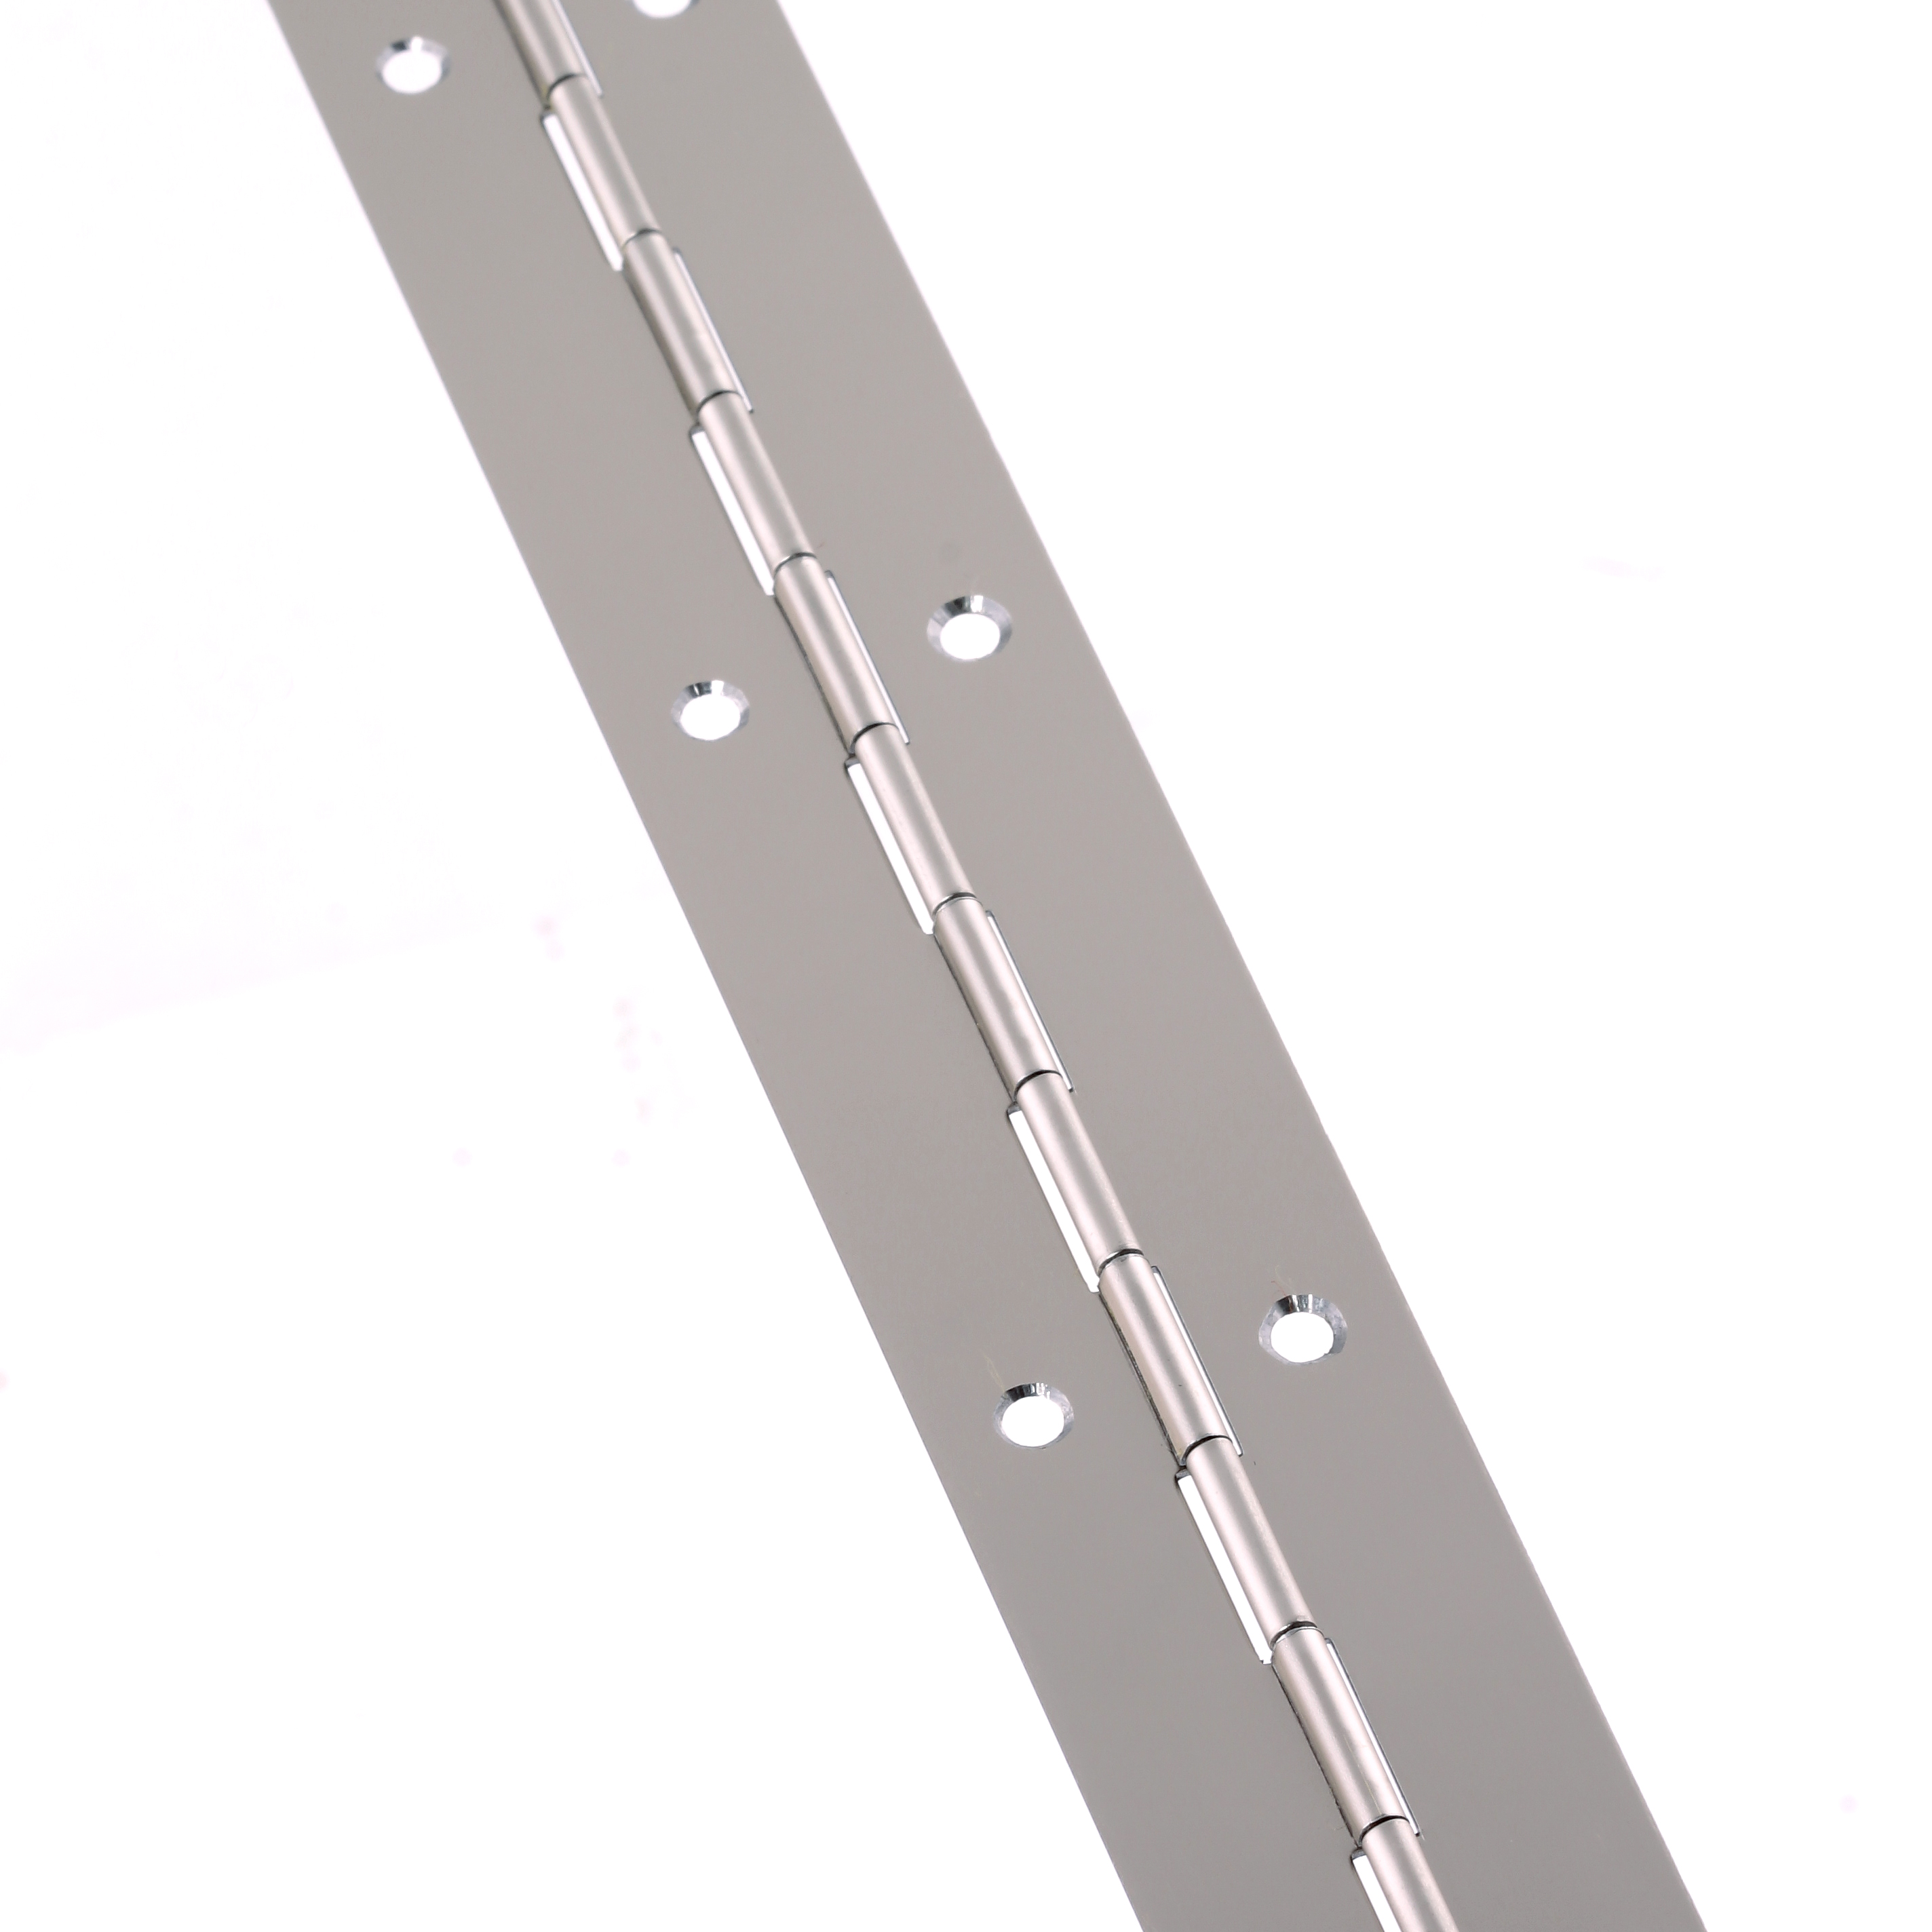 Steel Piano Hinge - 1800 x 32 x 0.7mm - Nickel Plated)